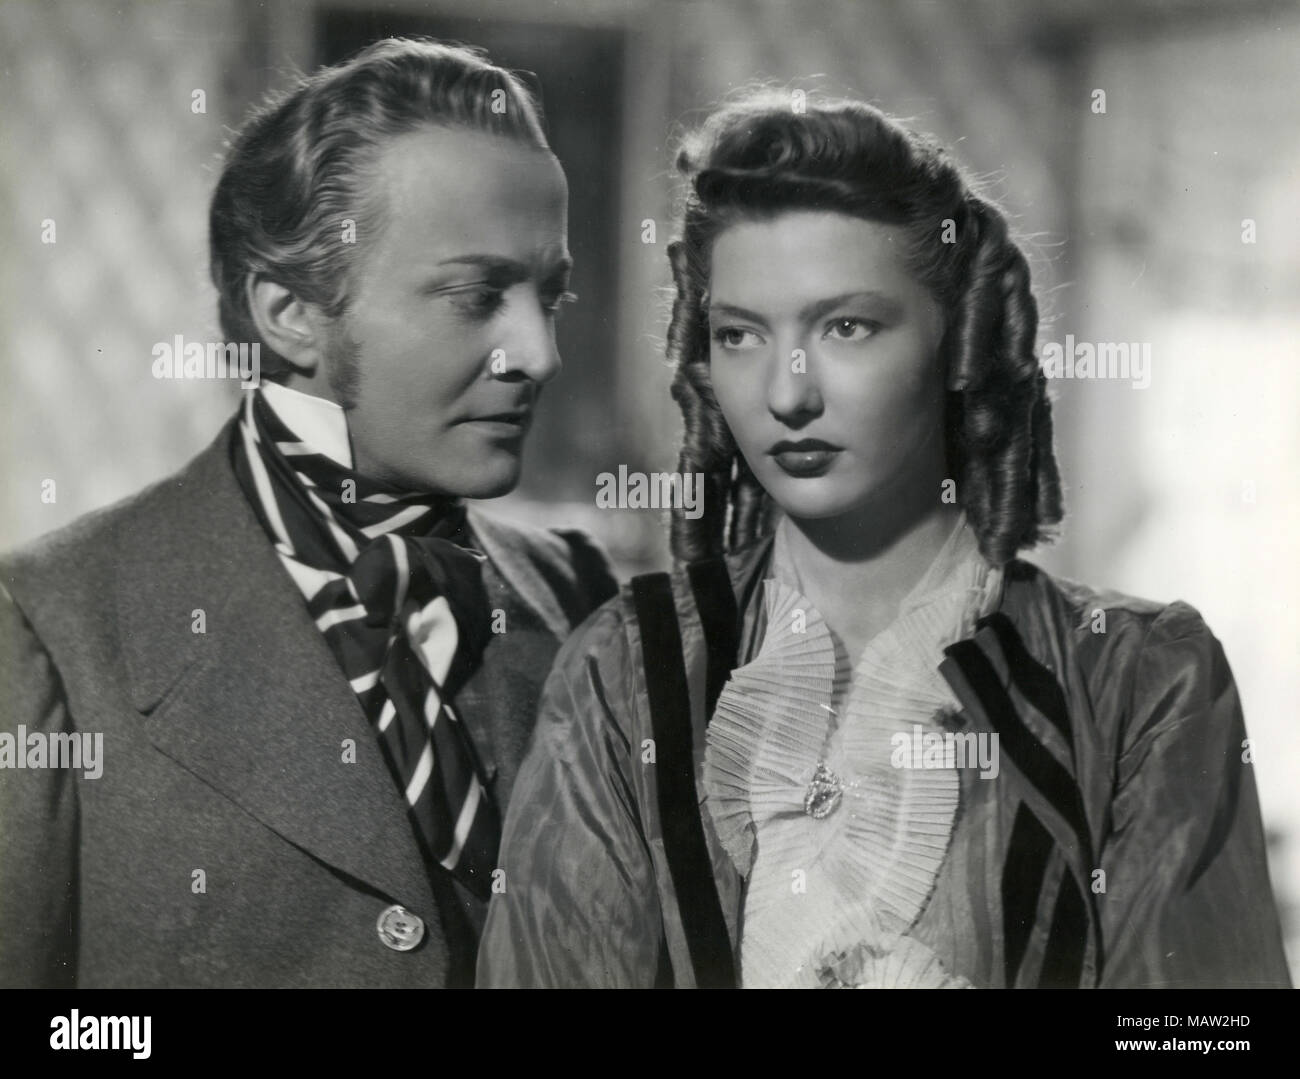 French actress Corinne Luchaire and Argentinian actor George Rigaud in the movie Abbandono, 1940 - Stock Image